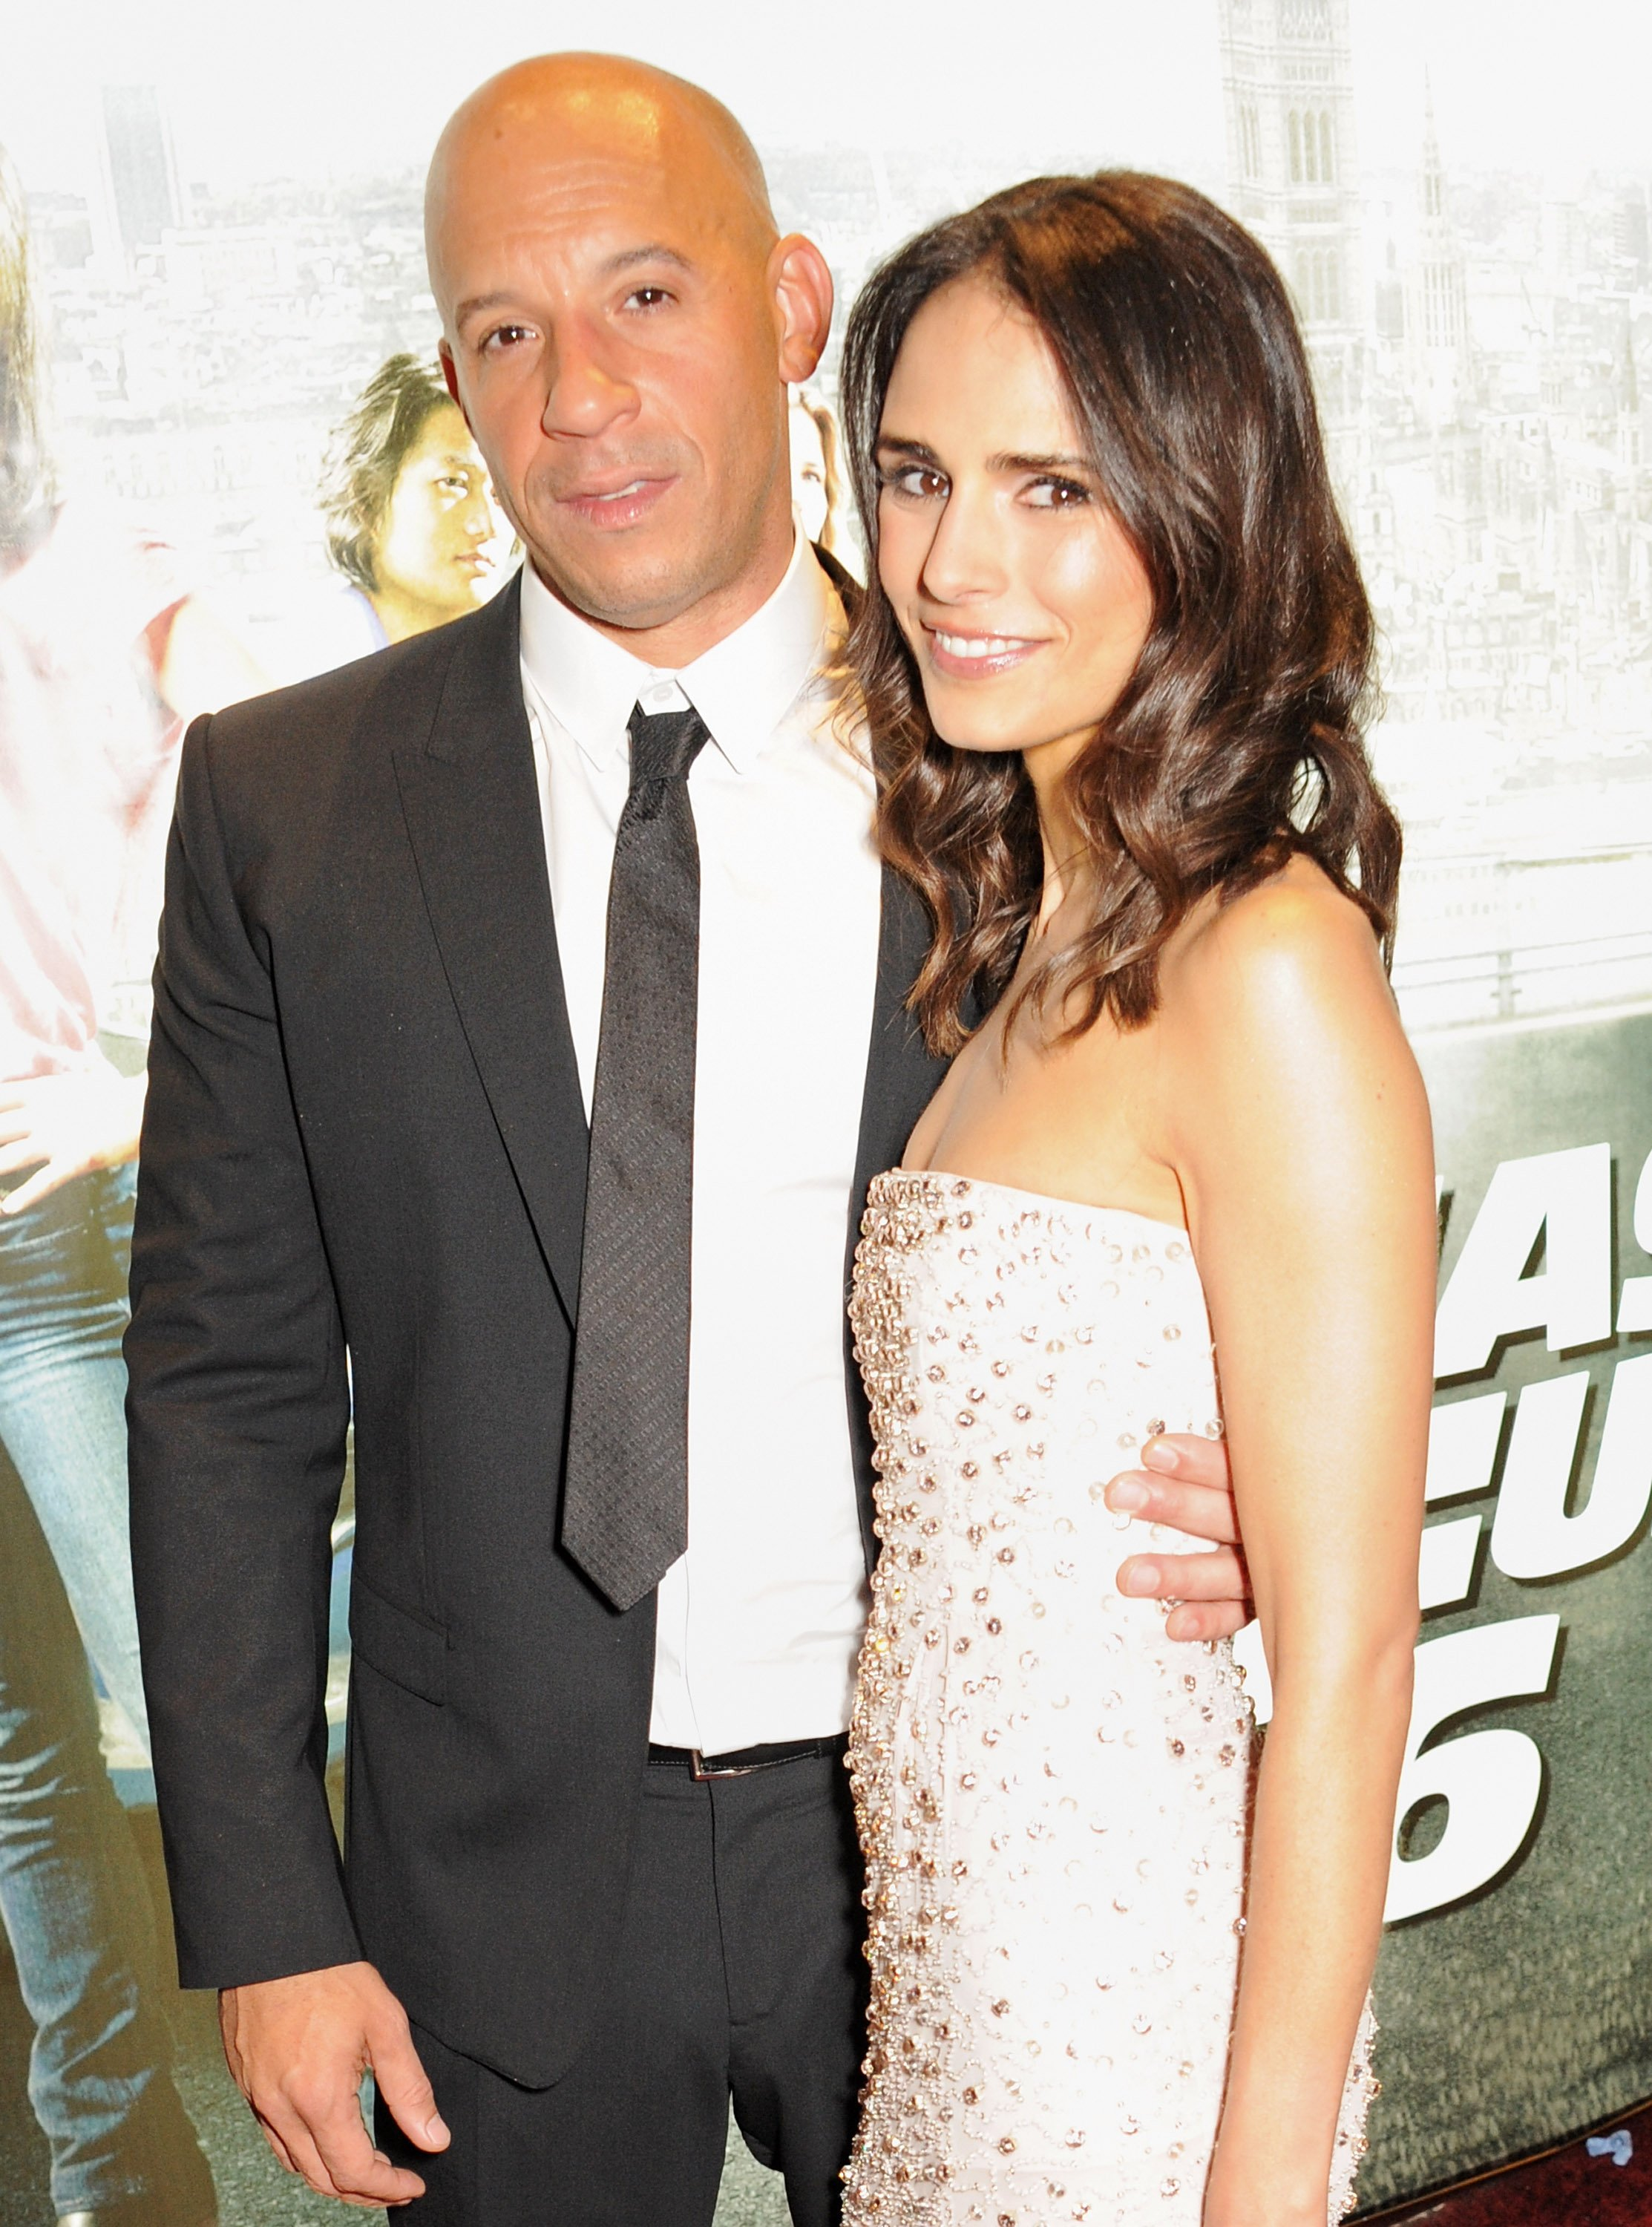 Vin Diesel and Jordana Brewster at the World Premiere of 'Fast & Furious 6' at Empire Leicester Square in London, England | Photo: Dave M. Benett/WireImage via Getty Images